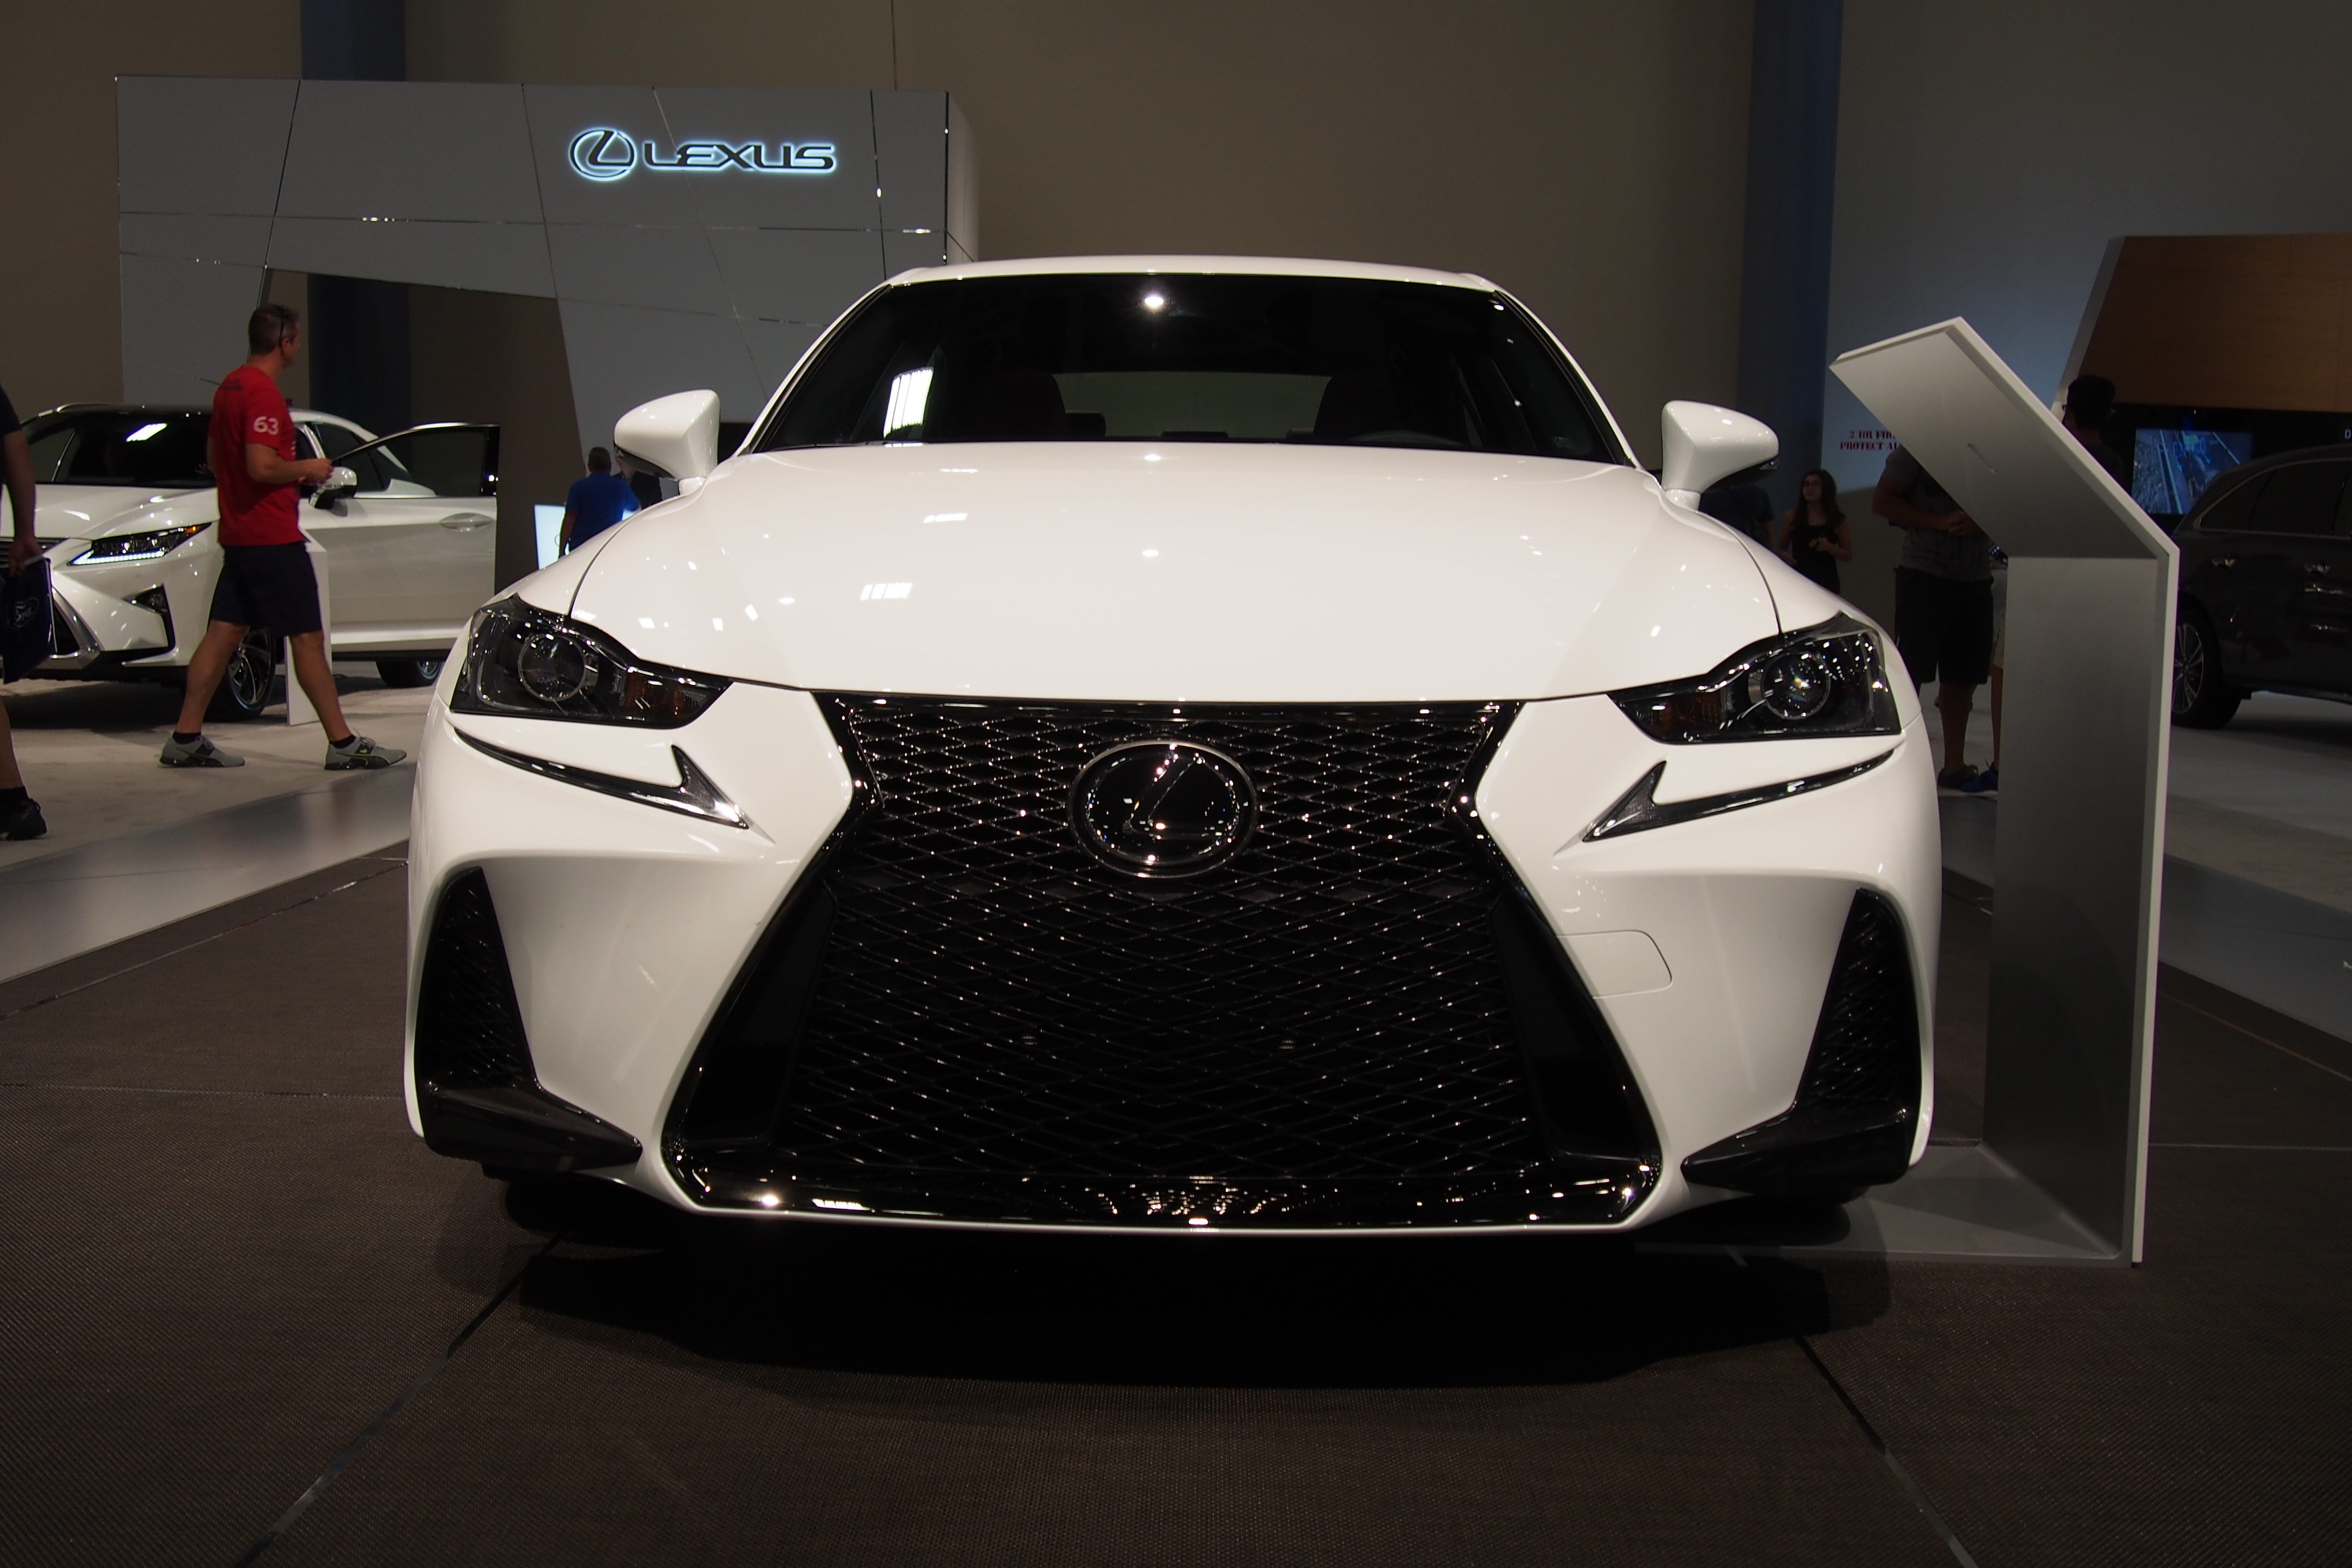 http://www.autoguide.com/blog/wp-content/gallery/2017-lexus-is-live-photos-9-10-2016/2017-Lexus-IS-Front-02.JPG